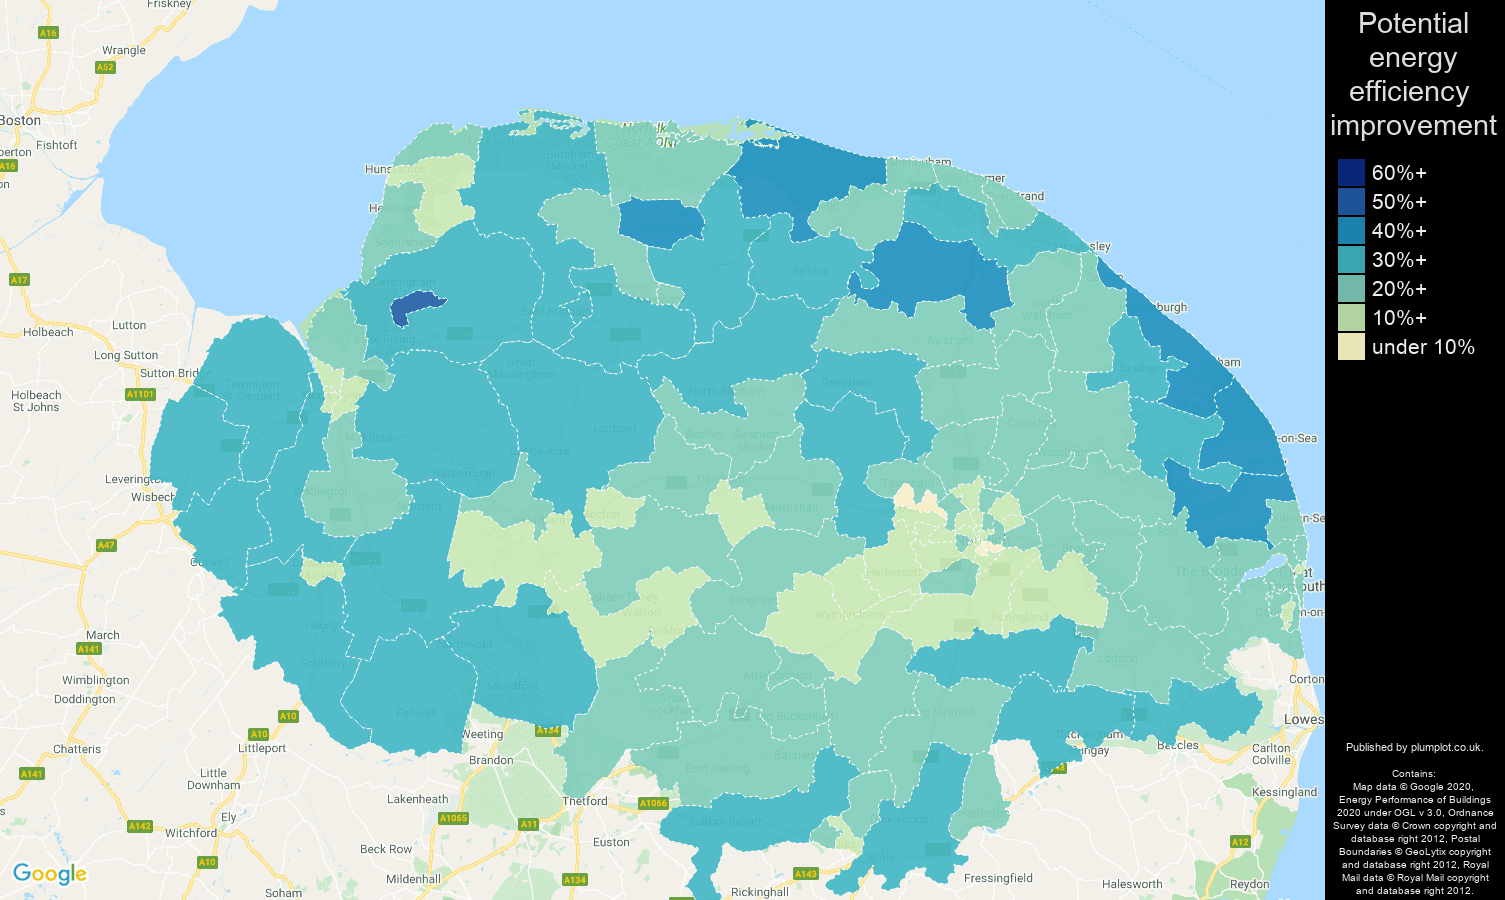 Norfolk map of potential energy efficiency improvement of properties